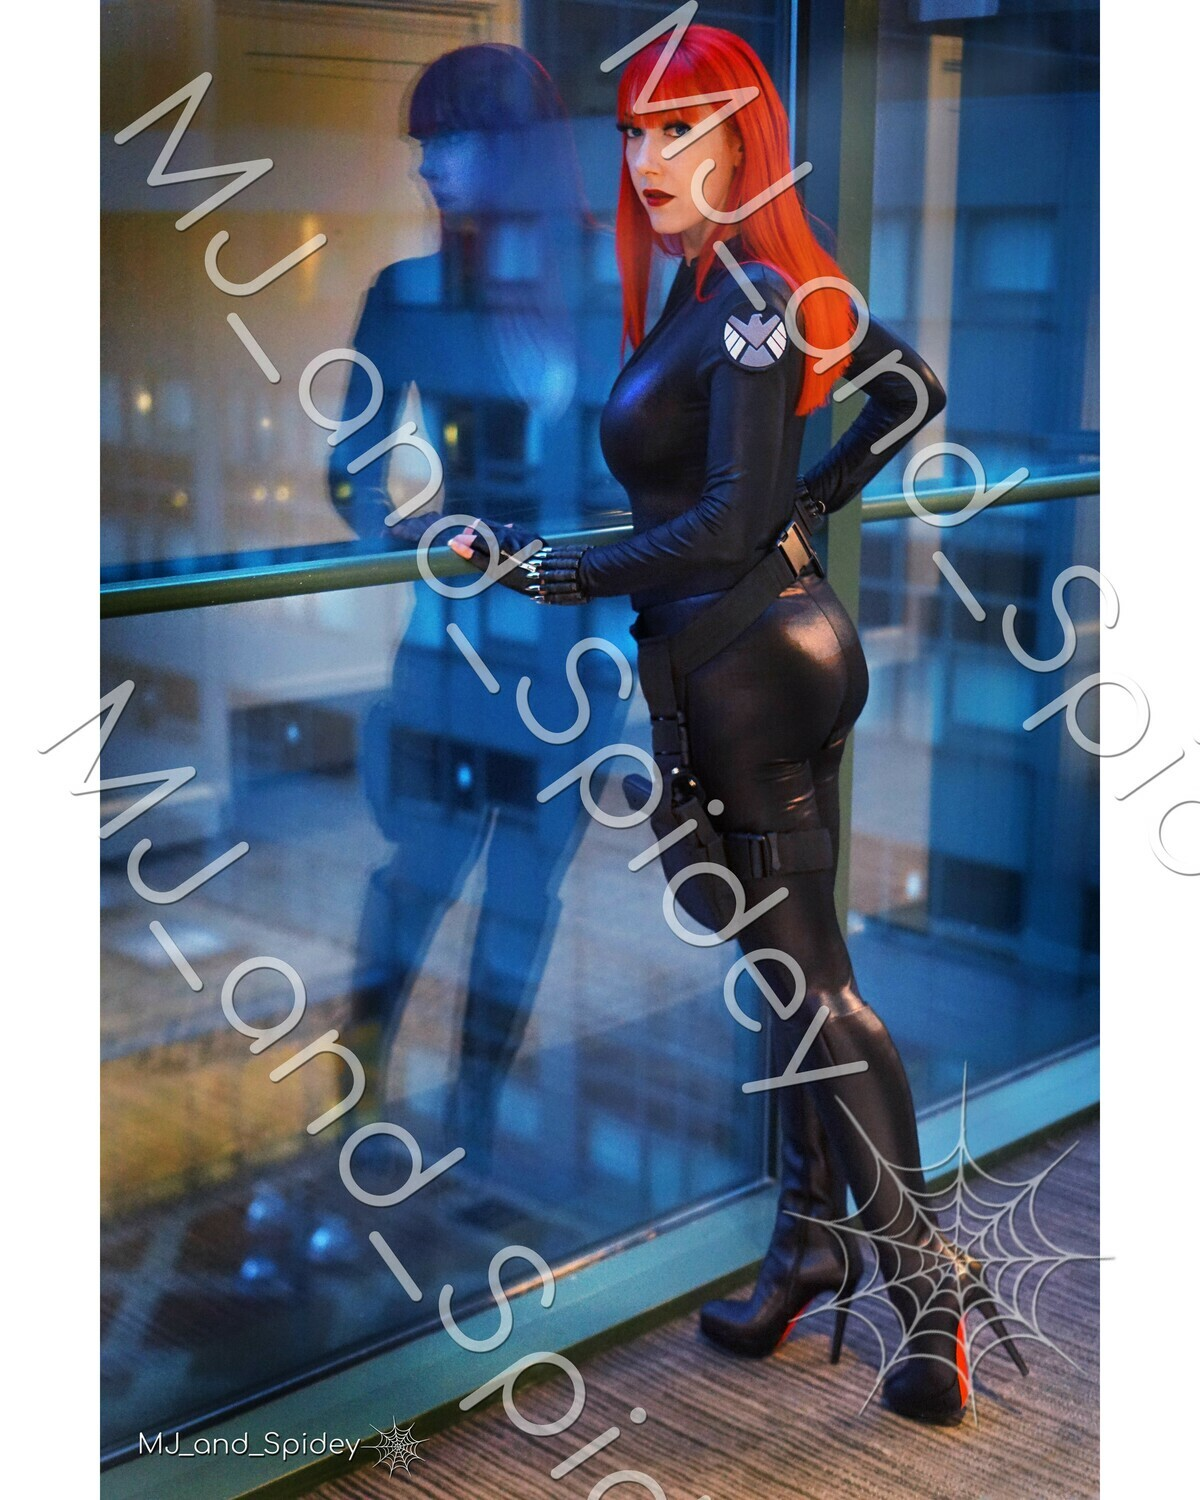 Marvel - Avengers - Black Widow No. 2 - 8x10 Cosplay Print (@MJ_and_Spidey, MJ and Spidey, Comics)